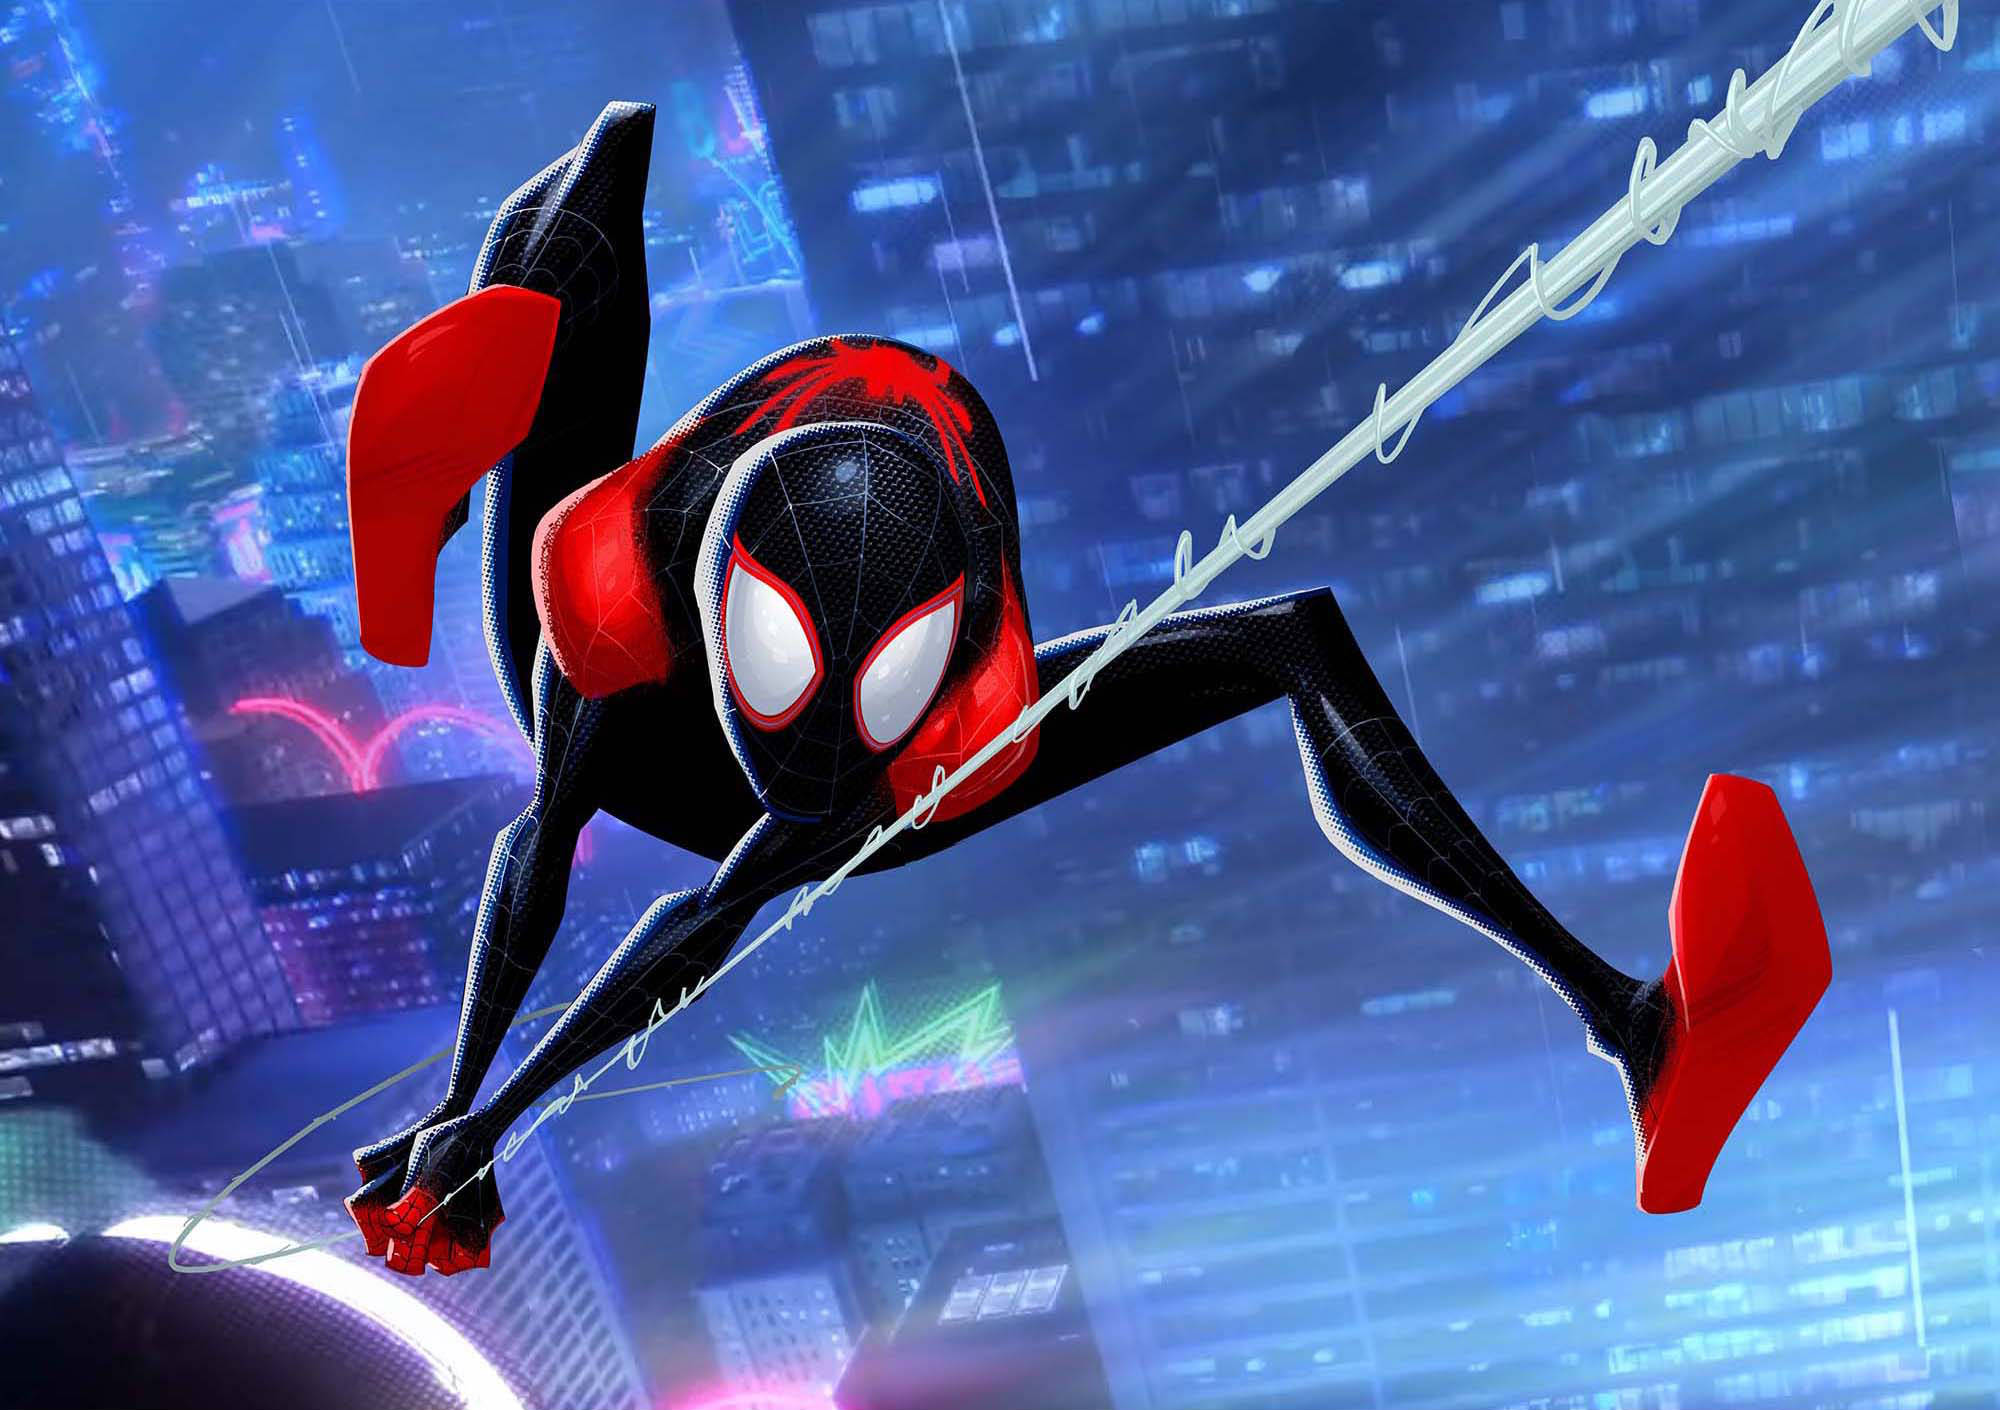 Miles Morales SpiderMan Into The Spider Verse, HD